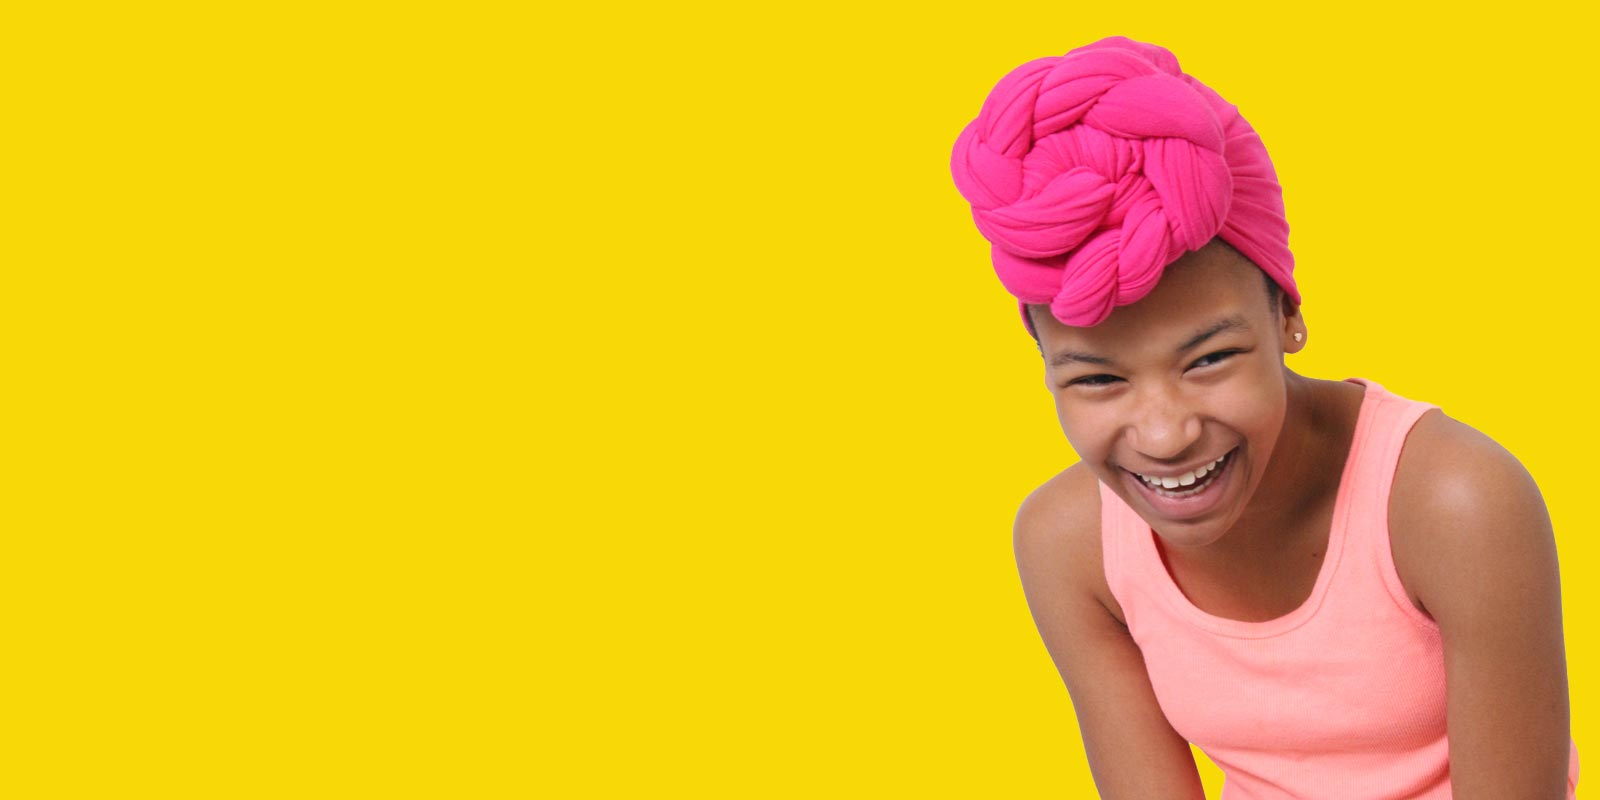 image of Eden Wilson in a pink headwrap and peach top laughing